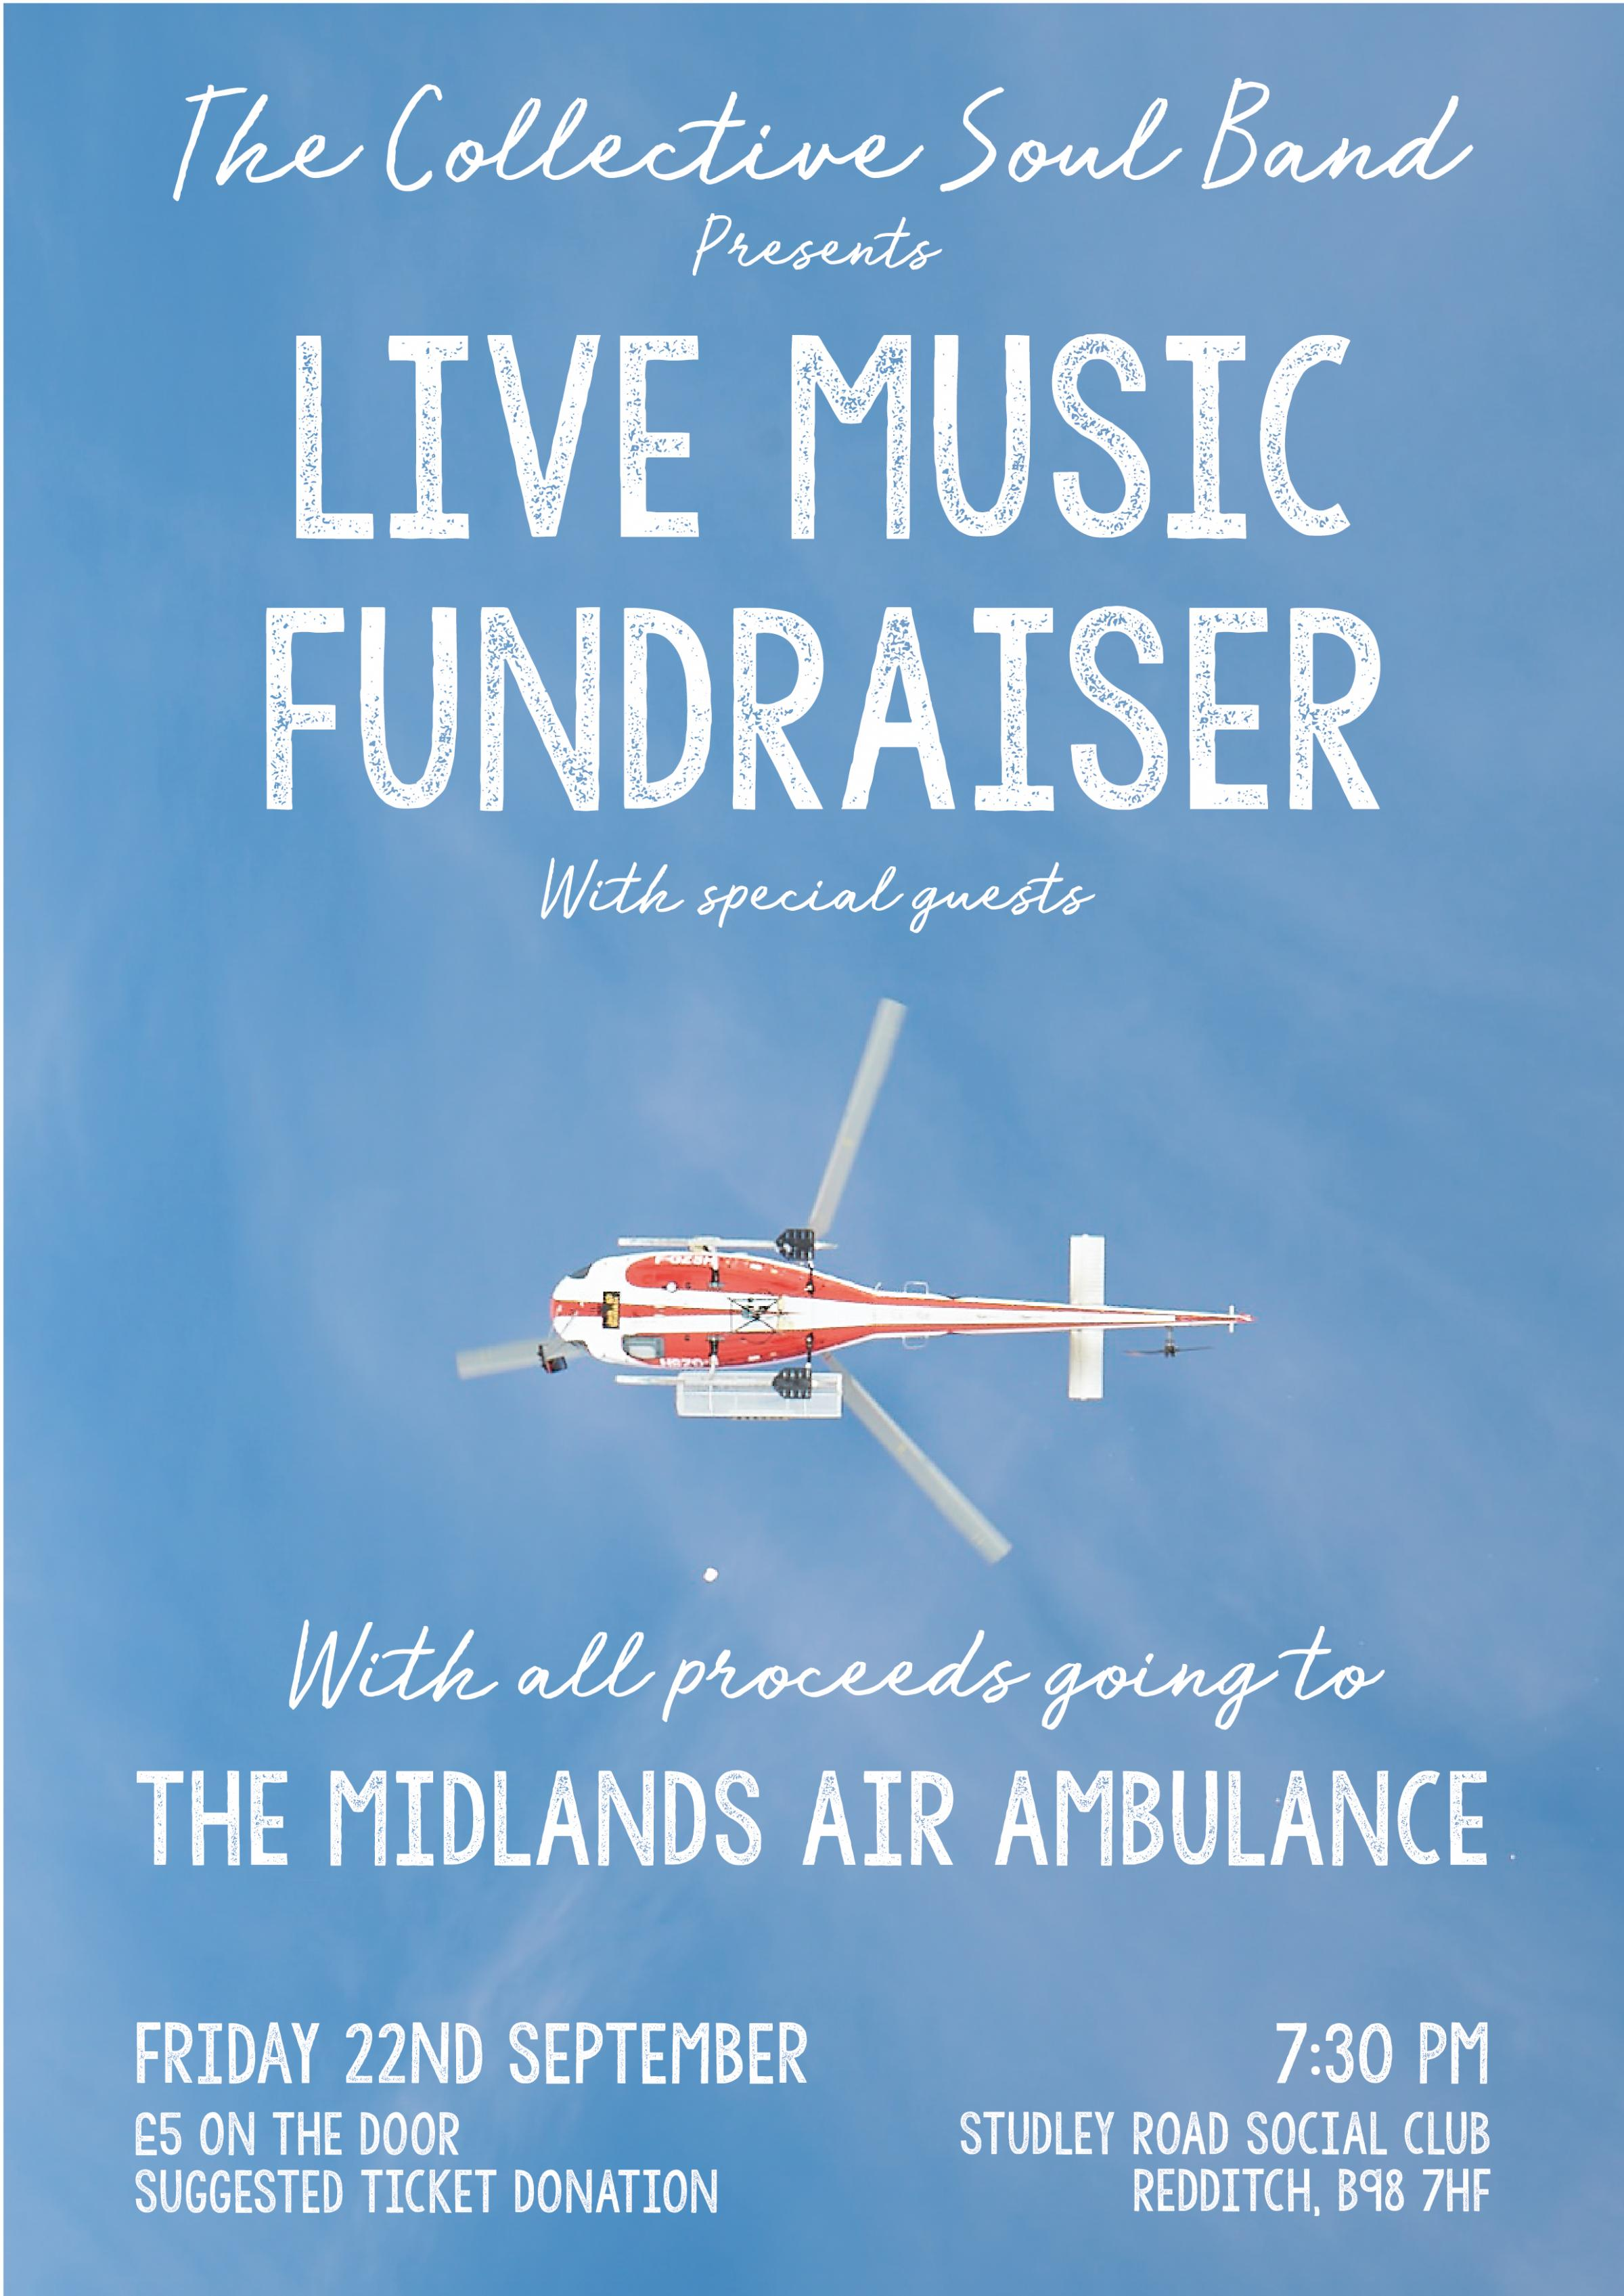 Live Music Fundraiser for the Midlands Air Ambulance